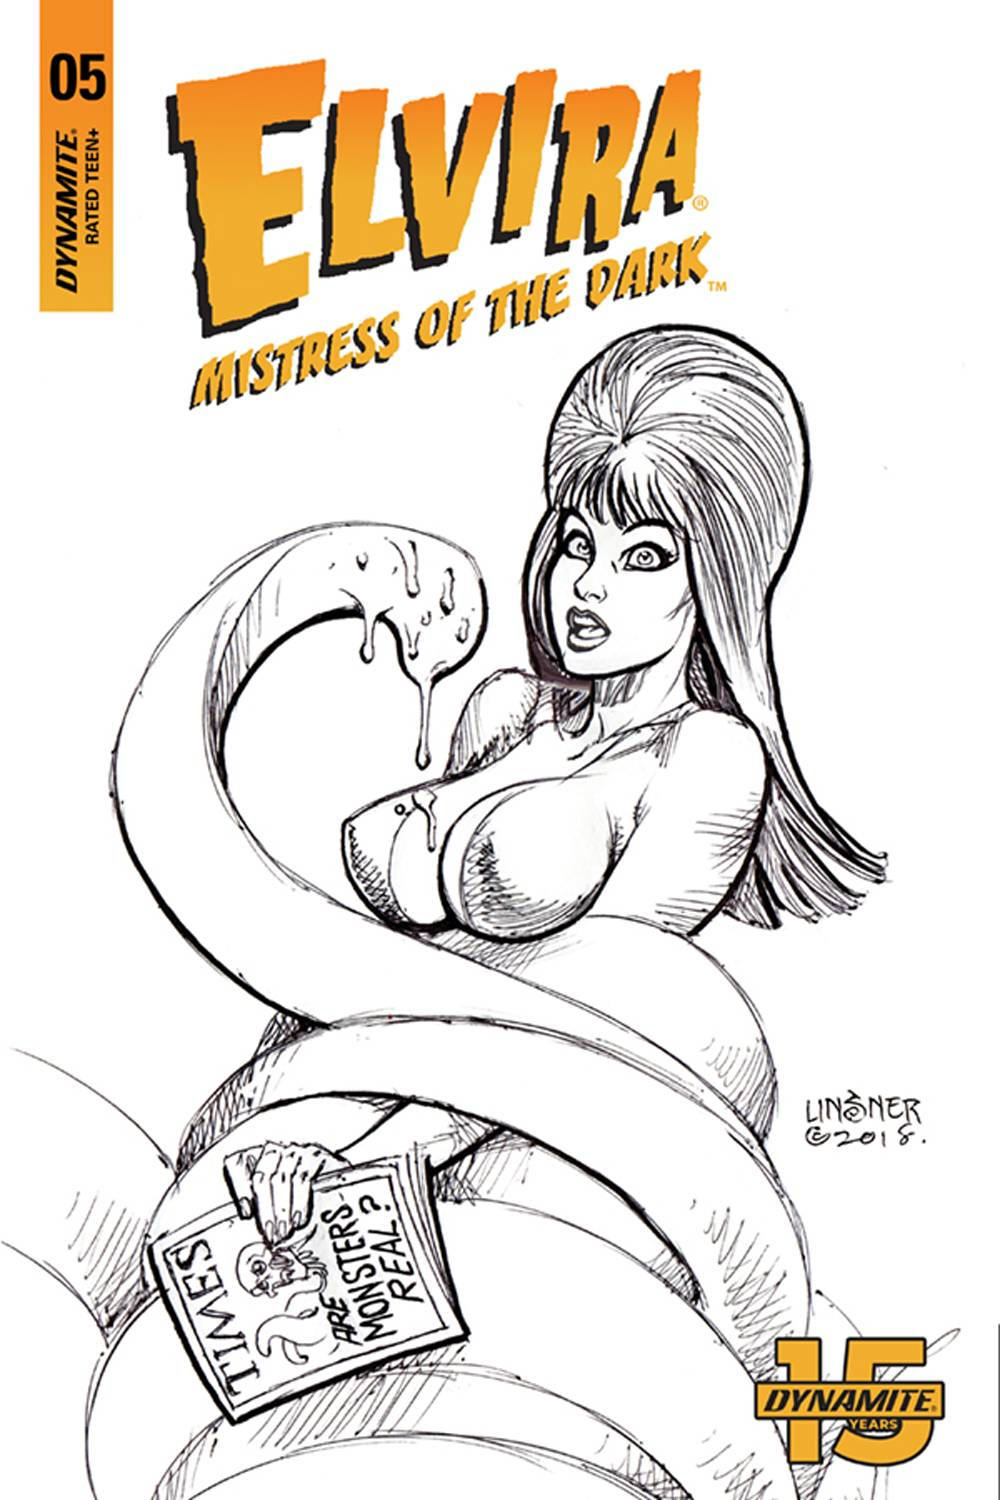 ELVIRA MISTRESS OF DARK 5 25 COPY LINSNER B&W INCV.jpg